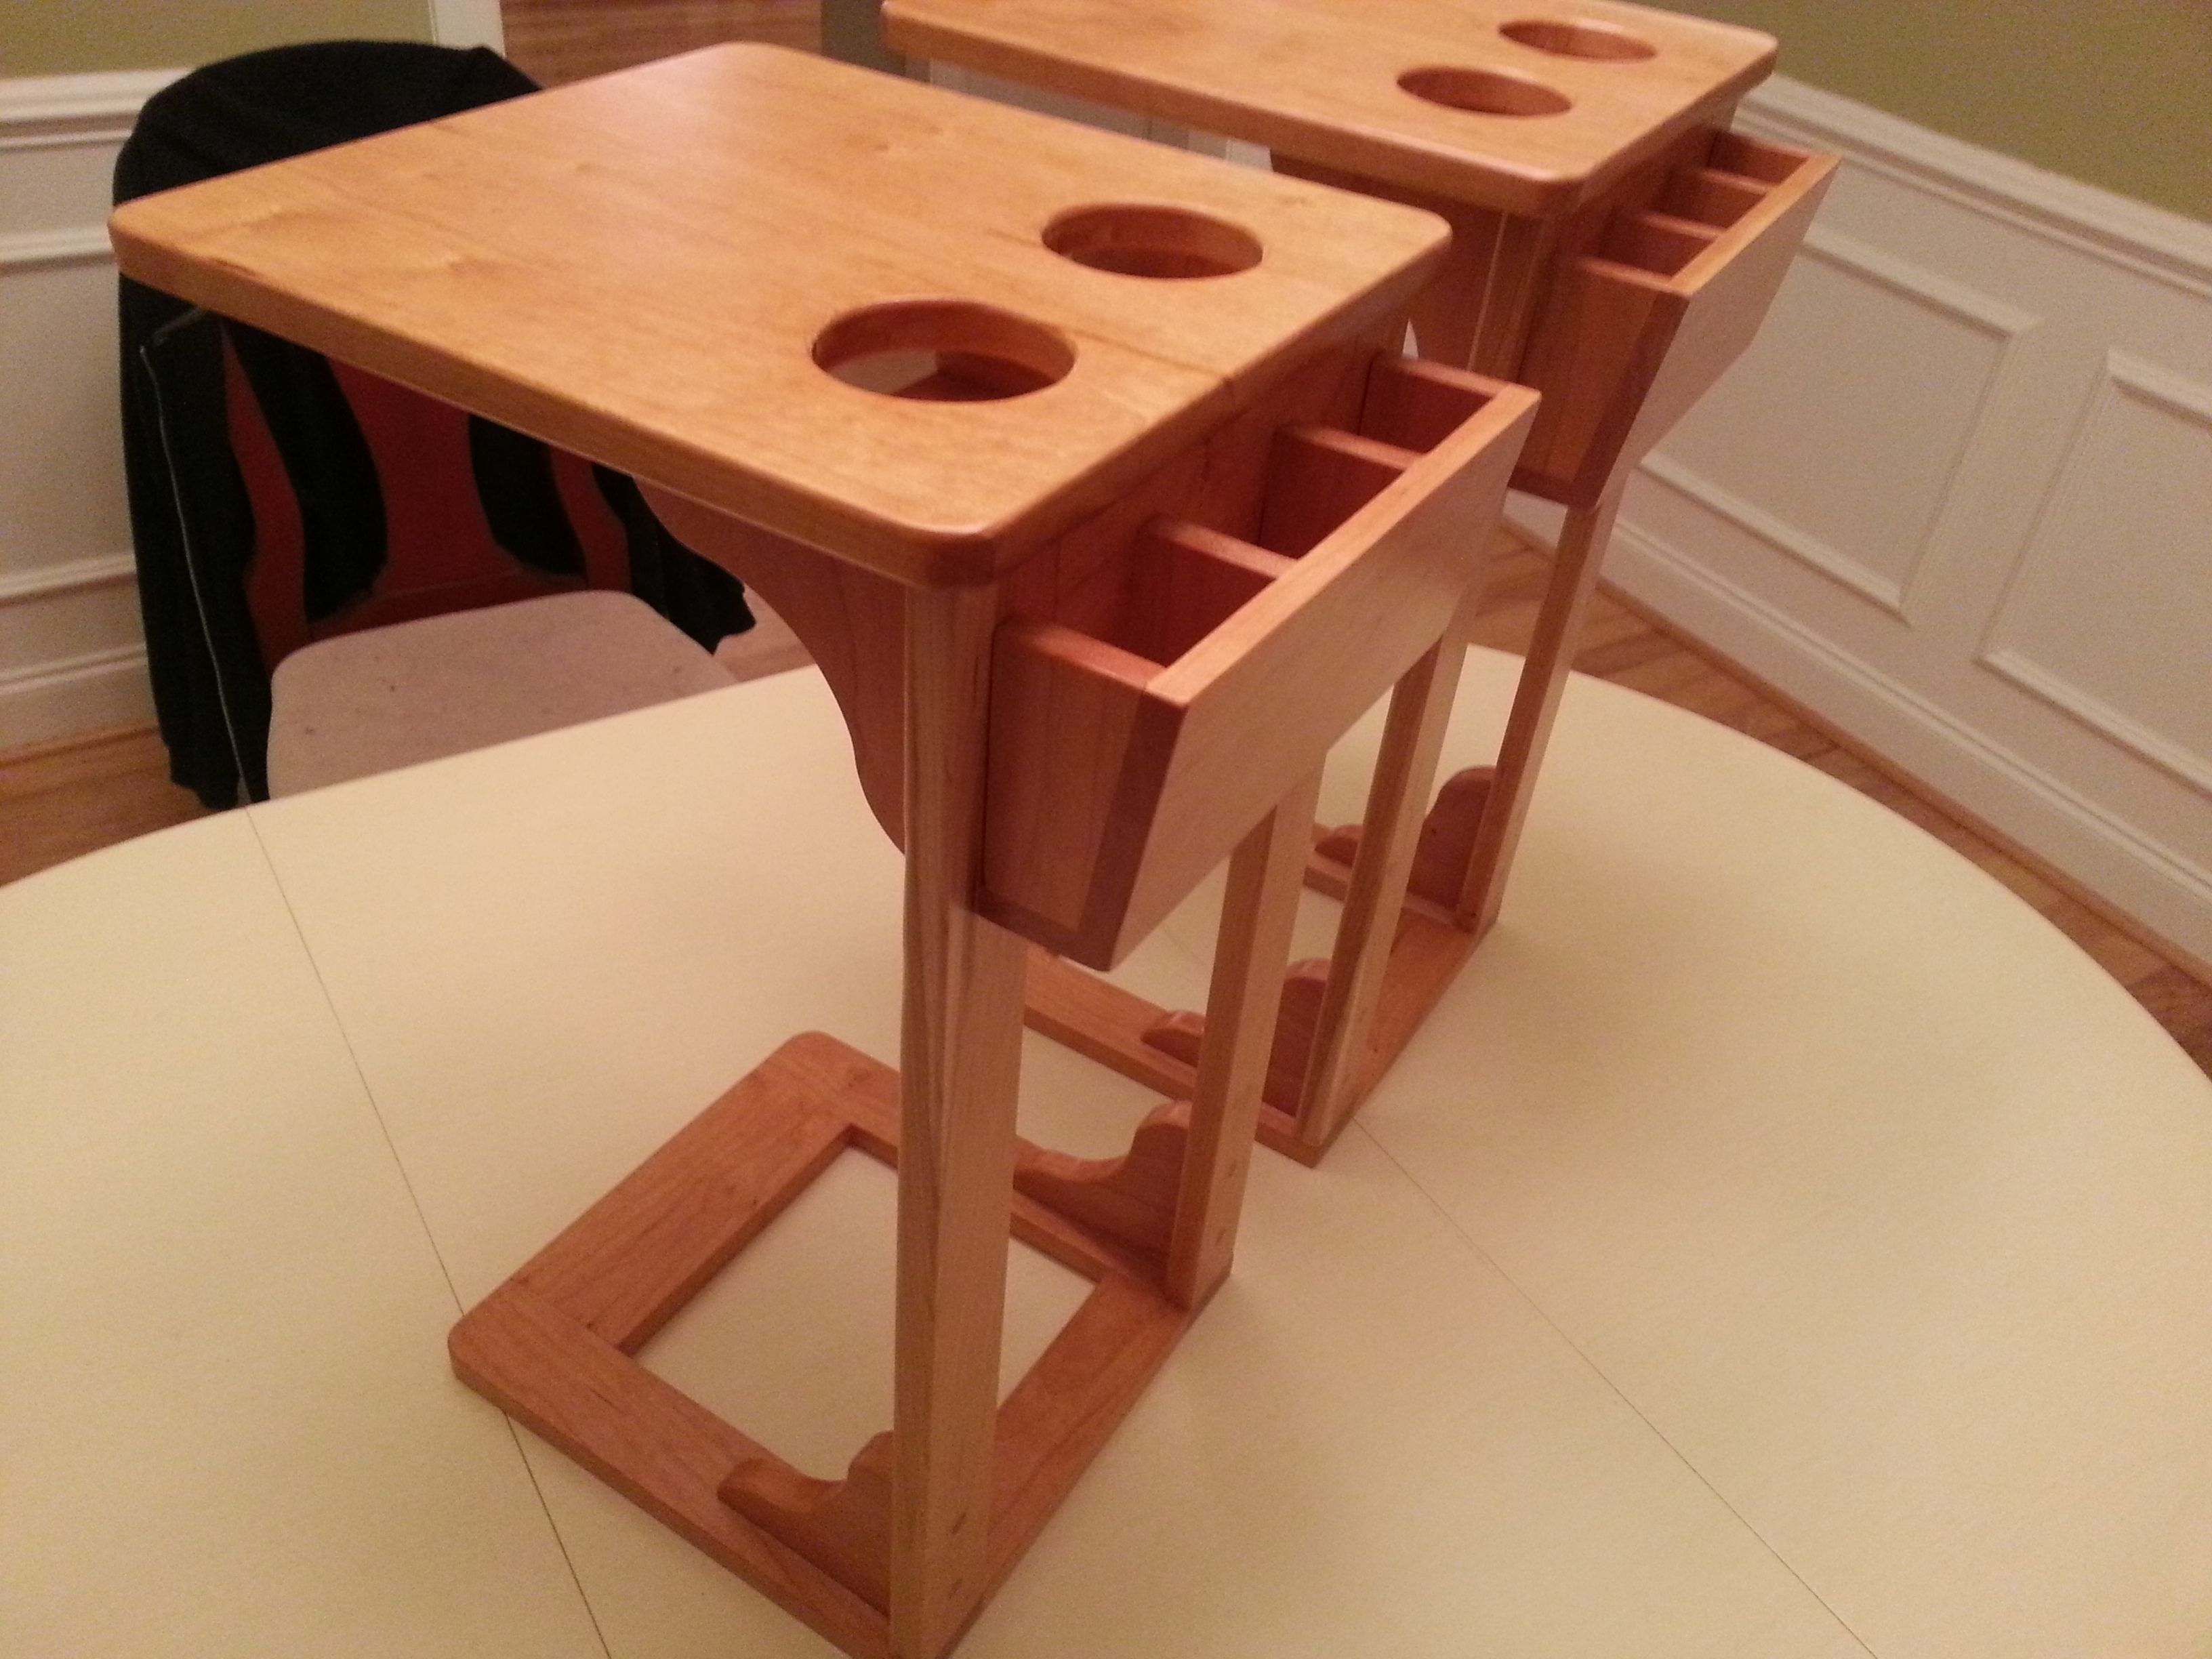 I took Steve s Sofa Snack Table design and made a few